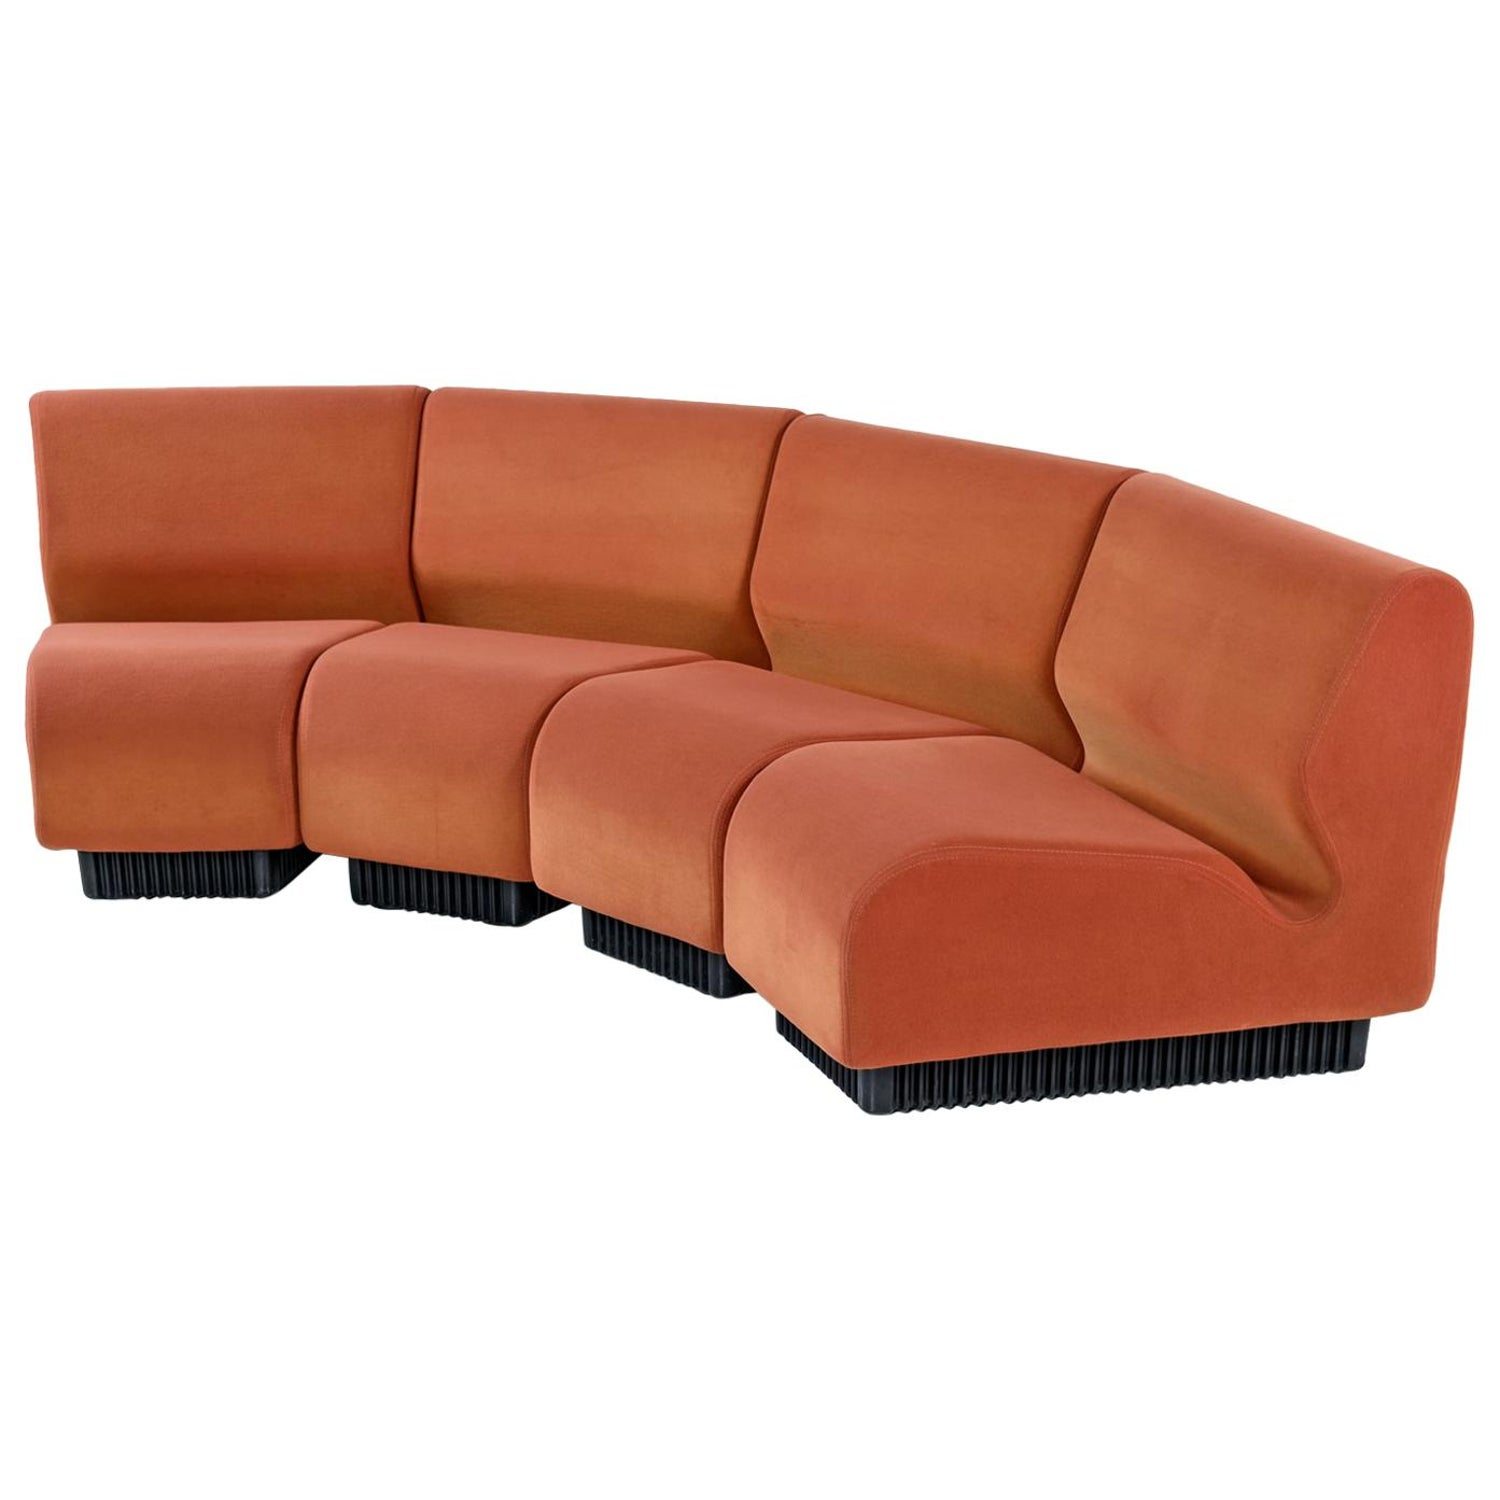 Don Chadwick Modular Curved Wedge Sectional Sofa Couch for Herman ...